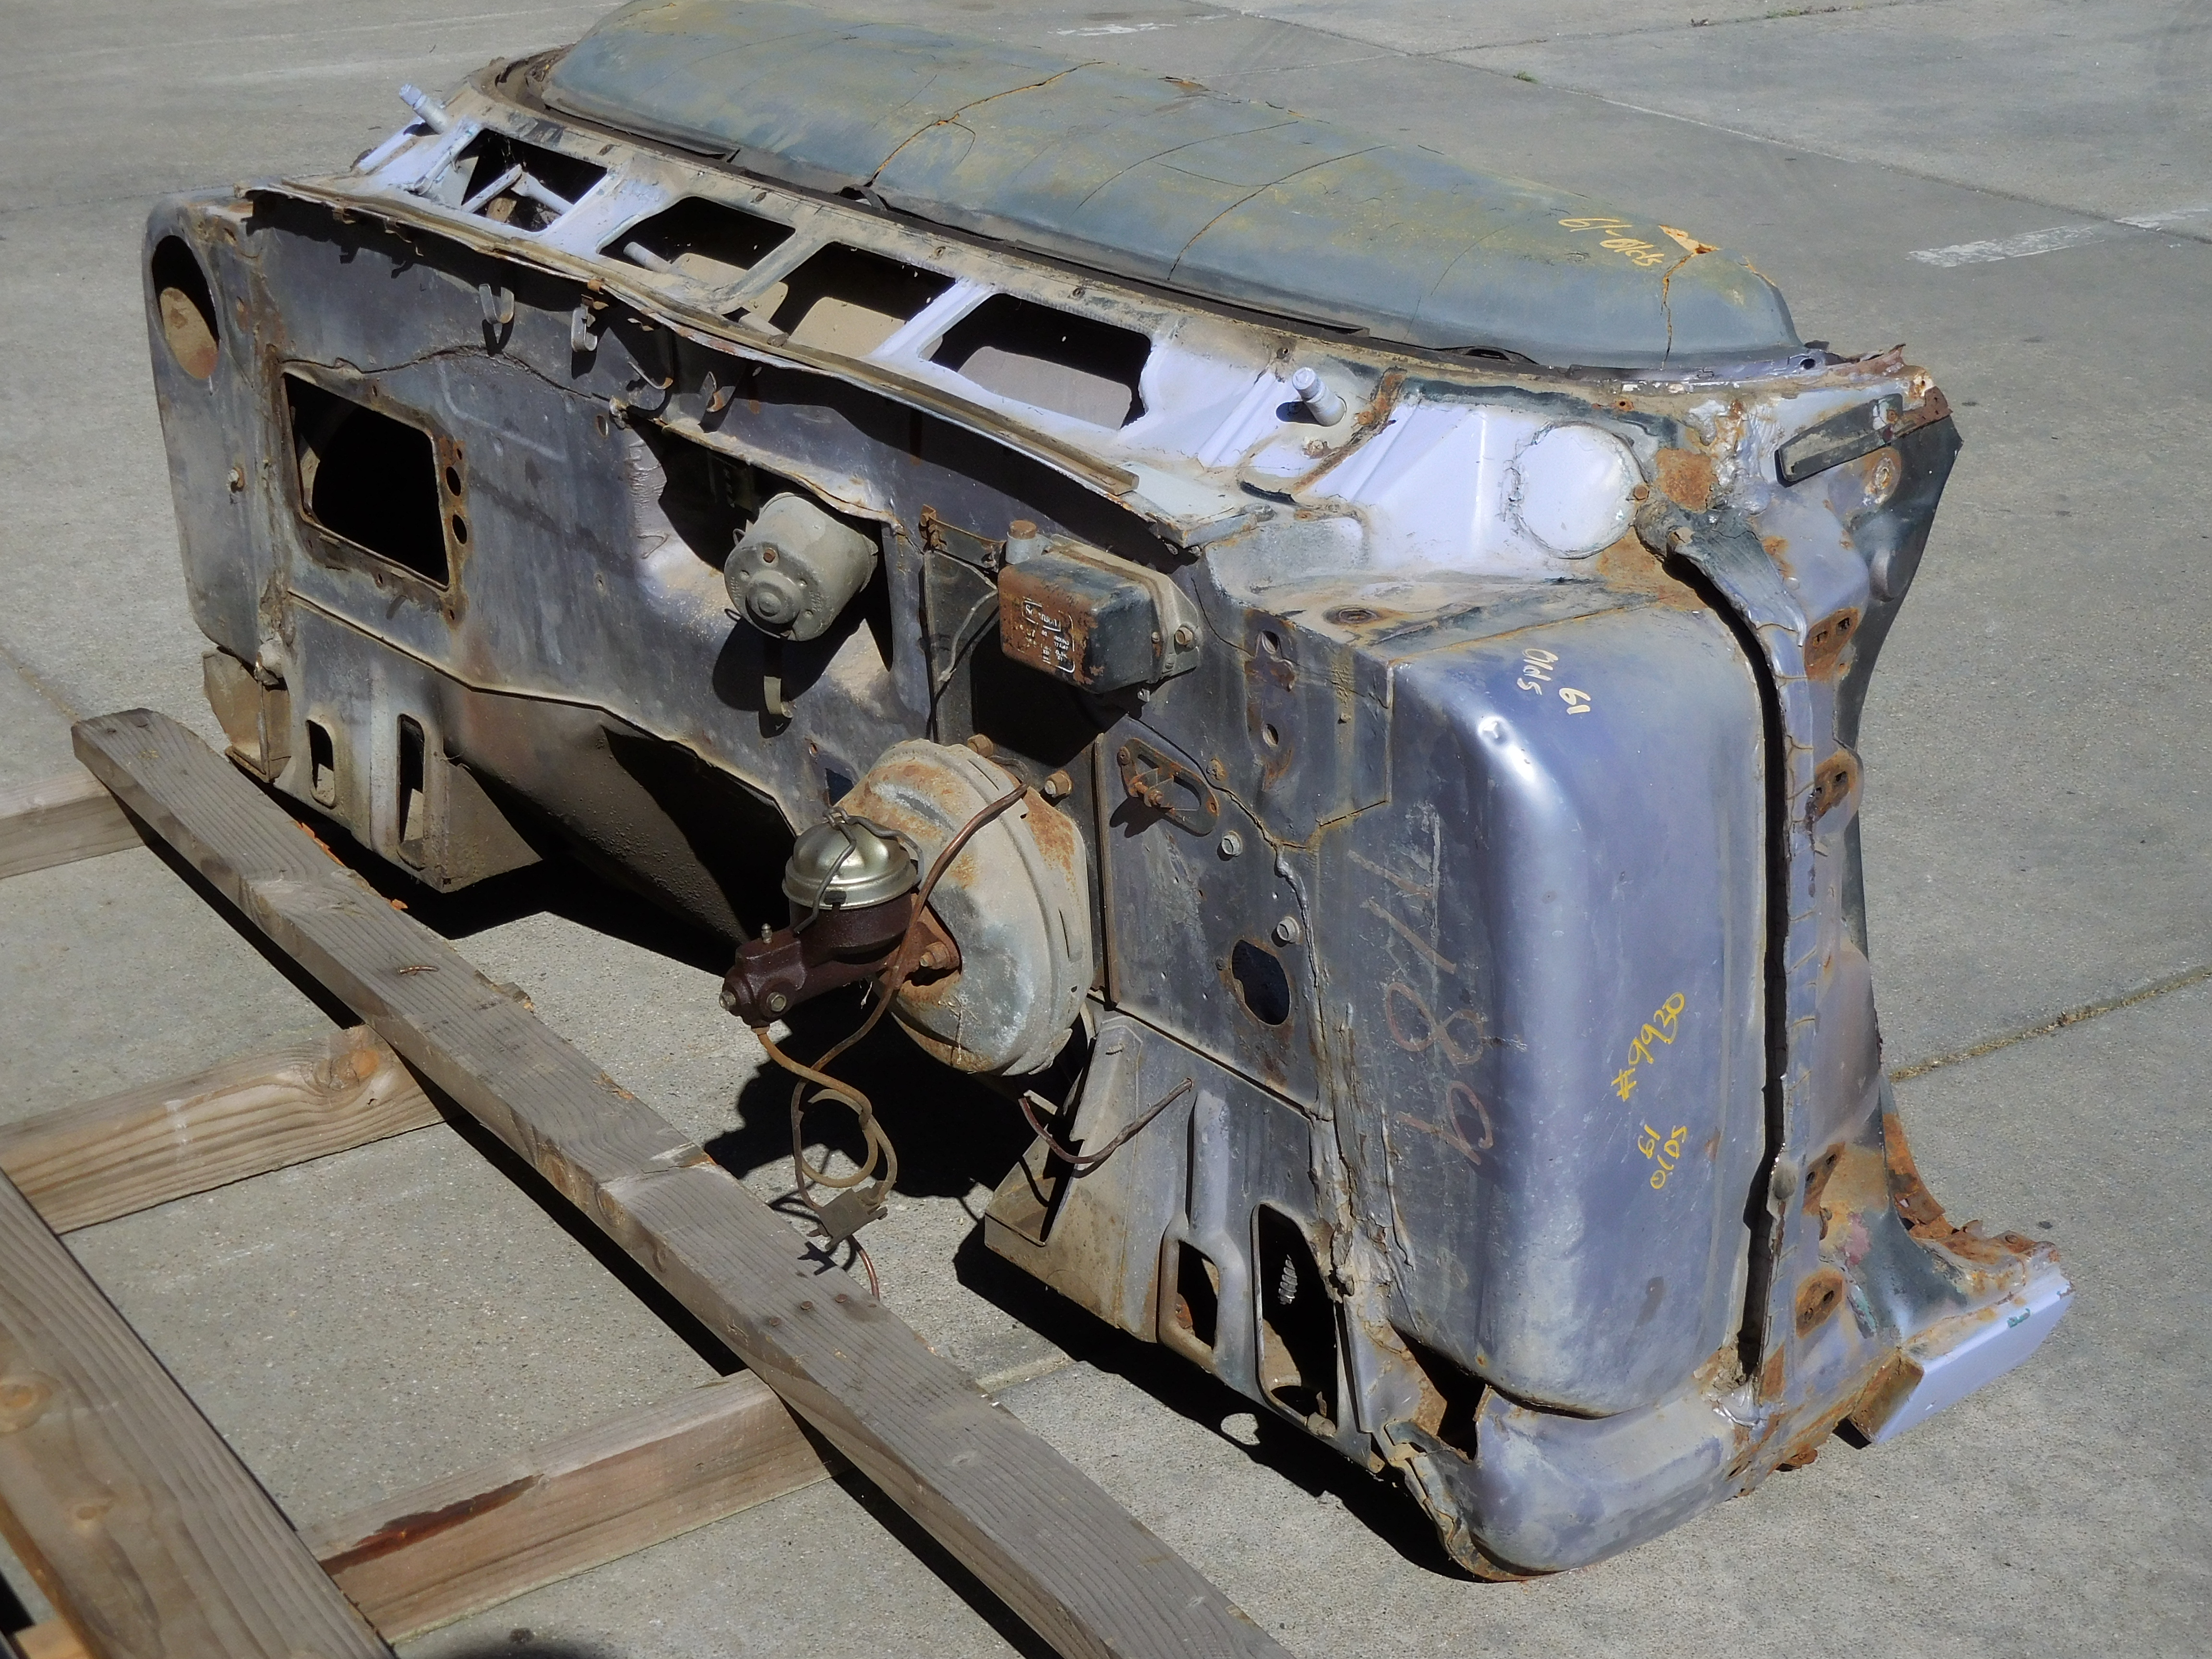 1961 Oldsmobile Full Size Cowl Section and Firewall Cut ...